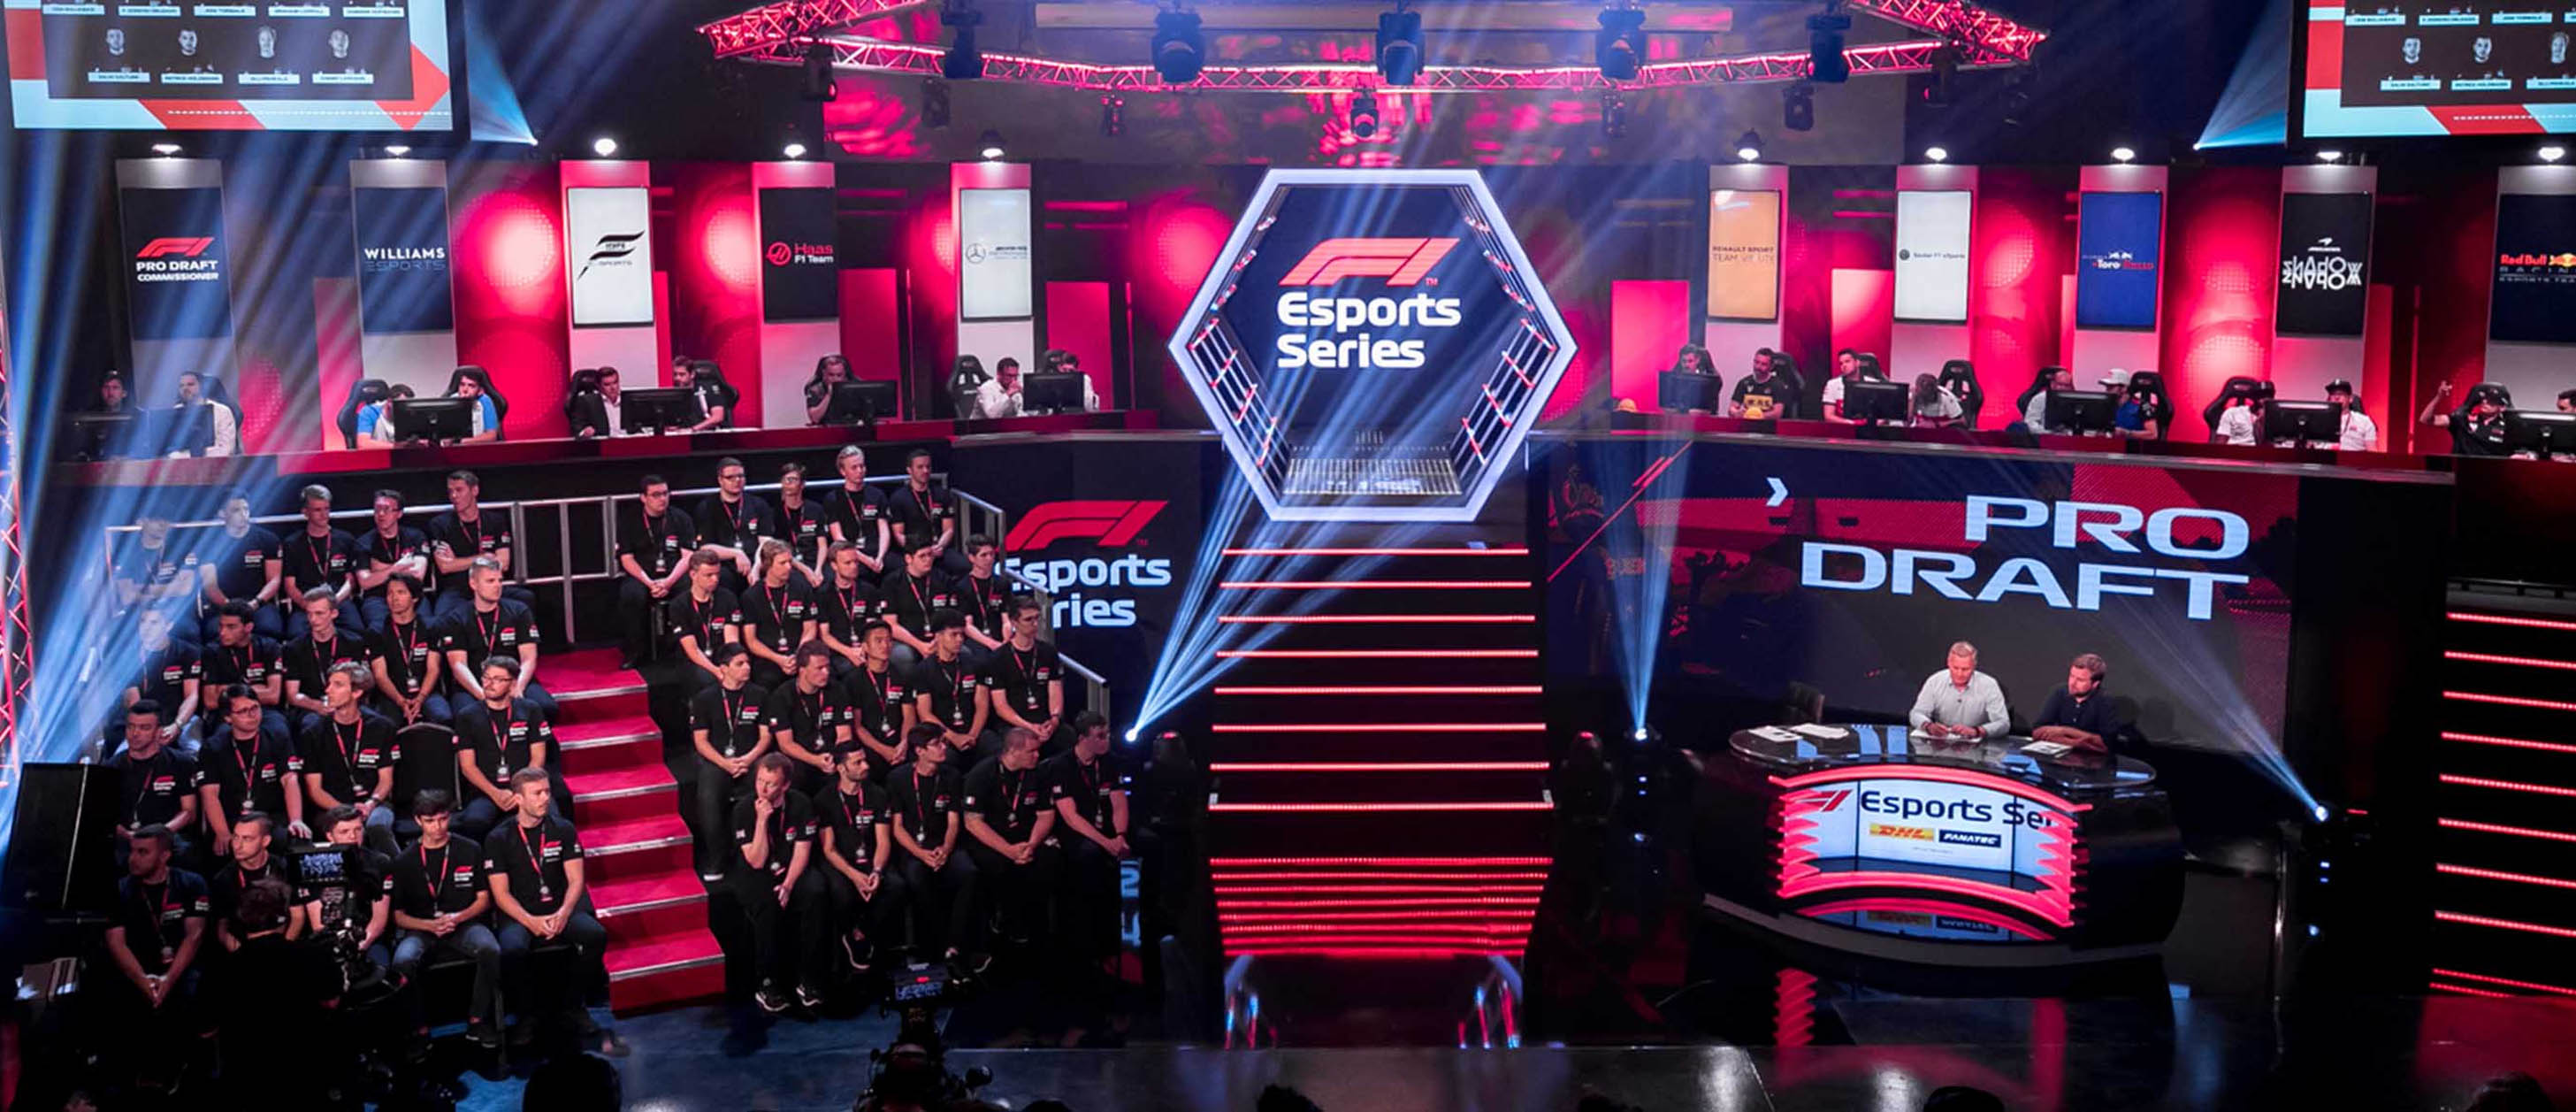 Record breaking numbers tried to qualify for F1 New Balance Esports Series Pro Draft